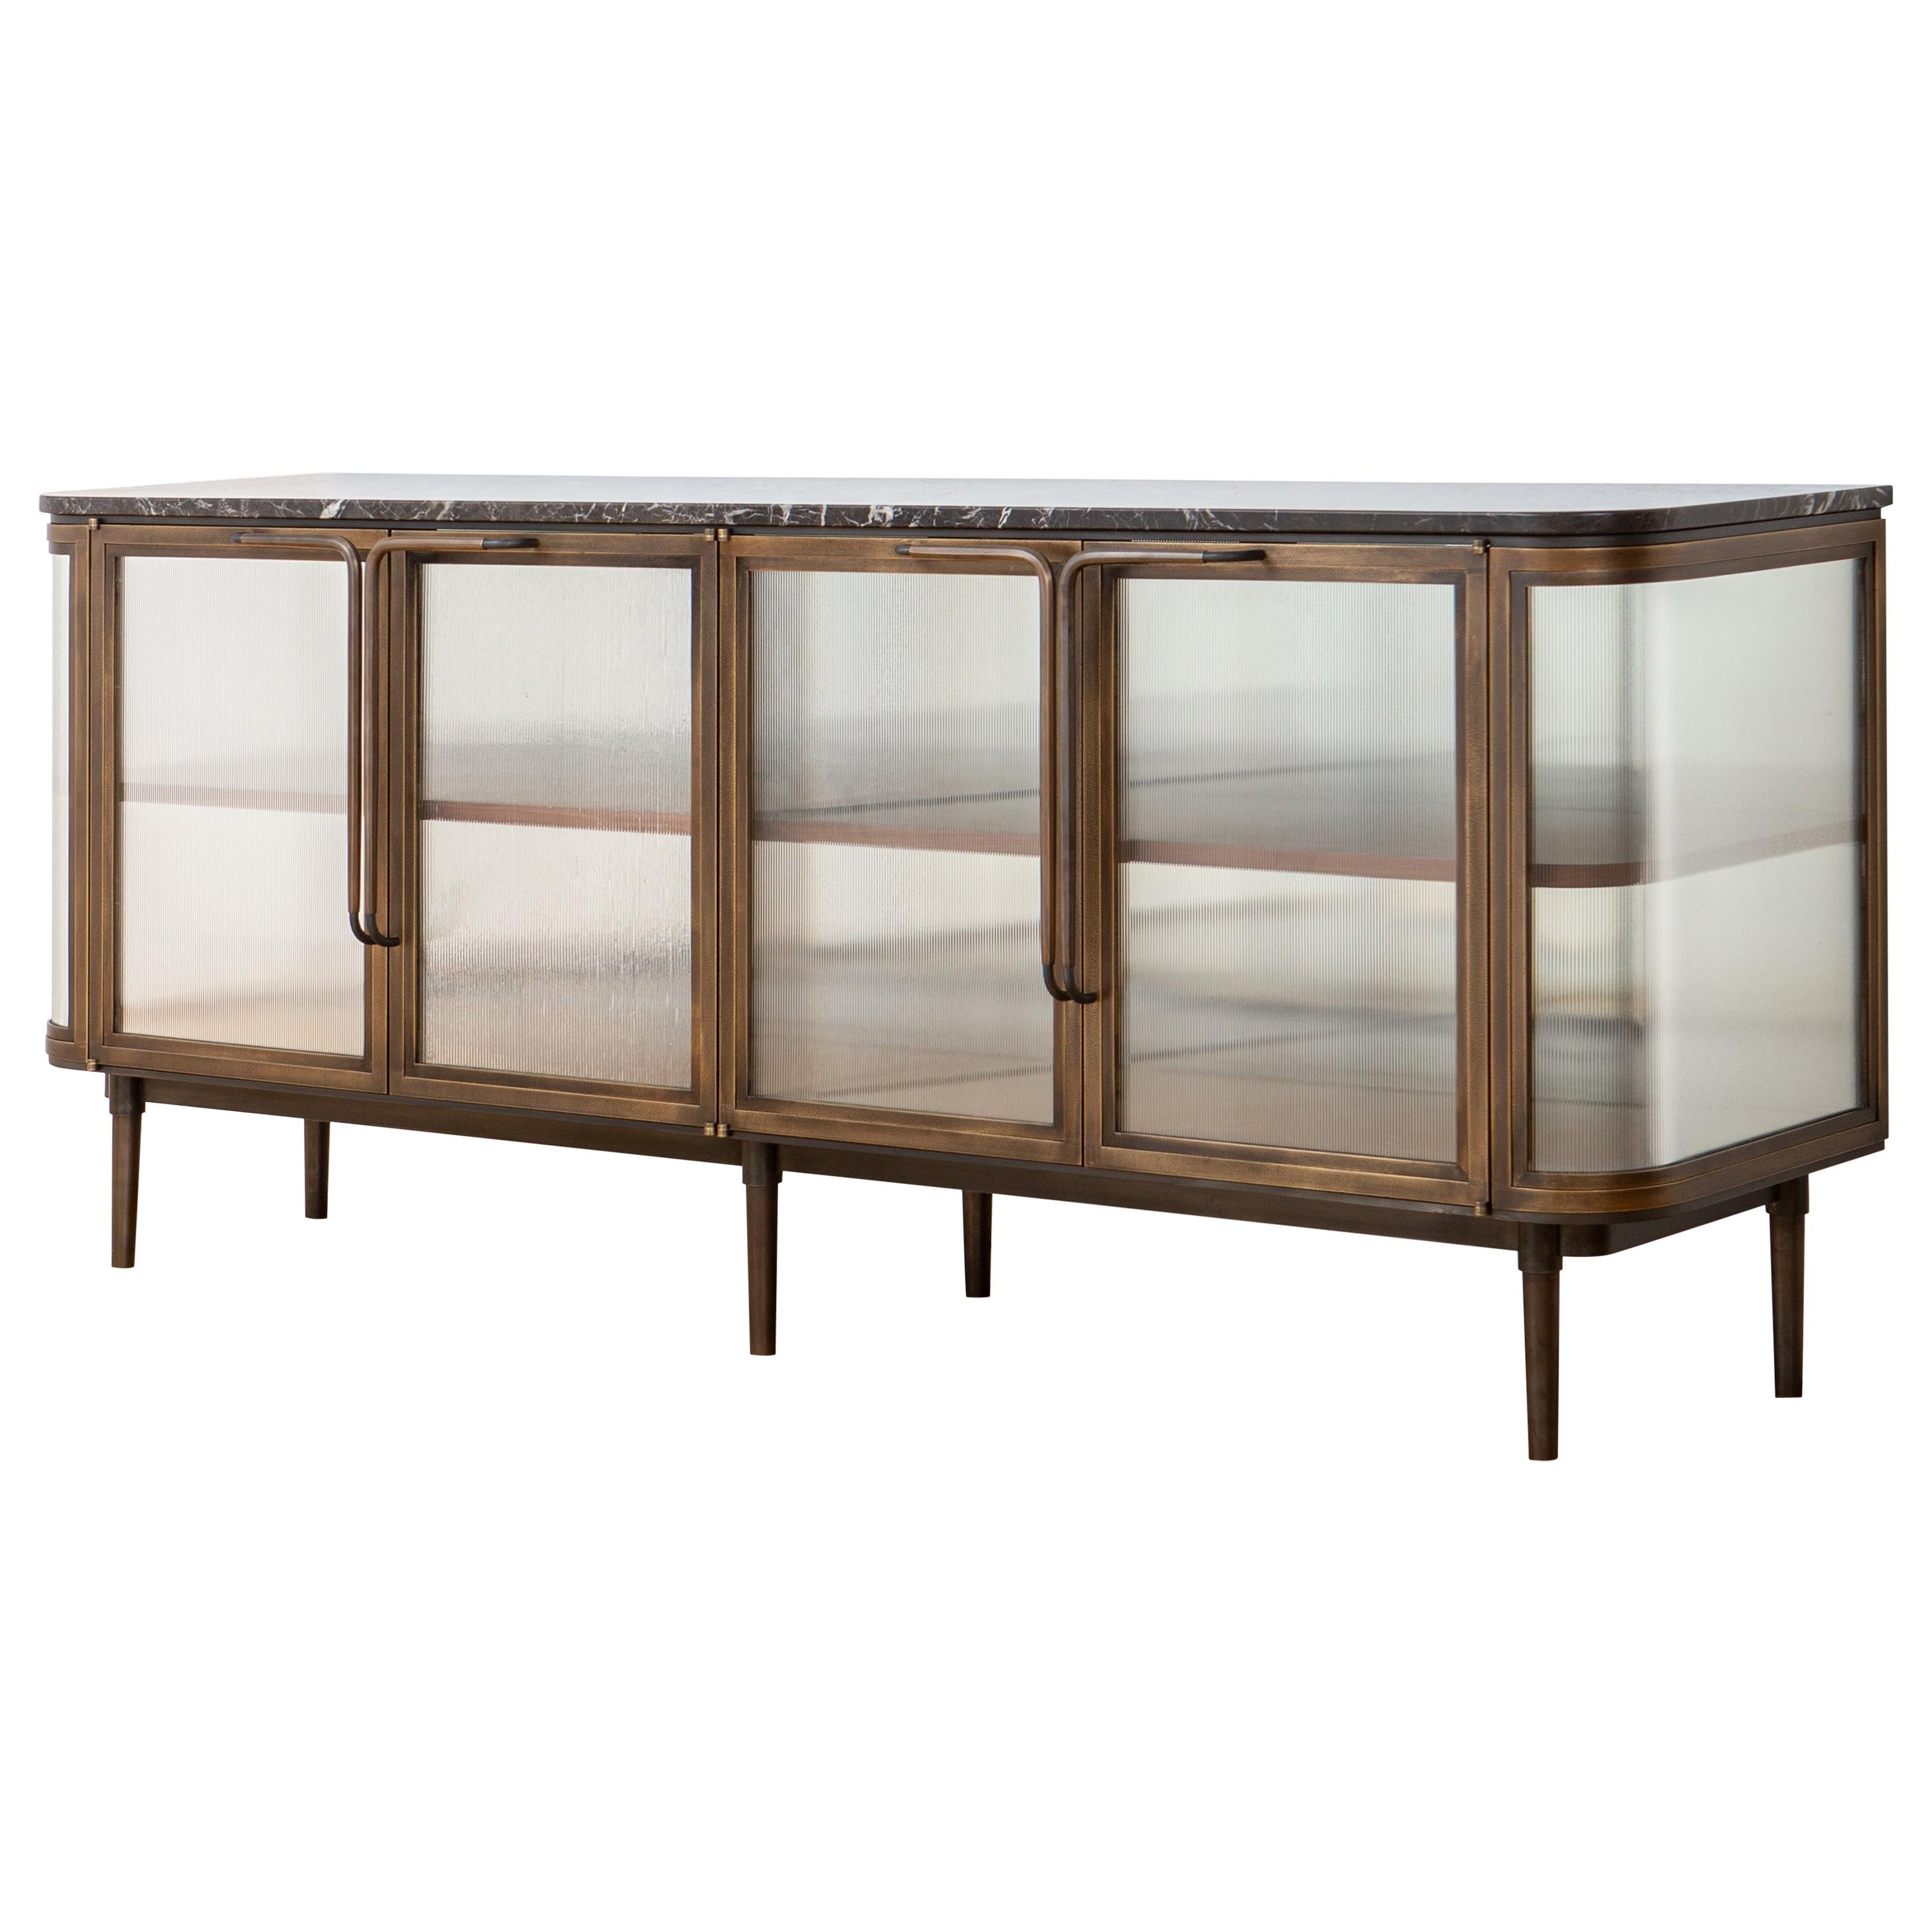 Plano Credenza in Bronze, Curved Glass Doors, Marble Top, Black Walnut Shelves